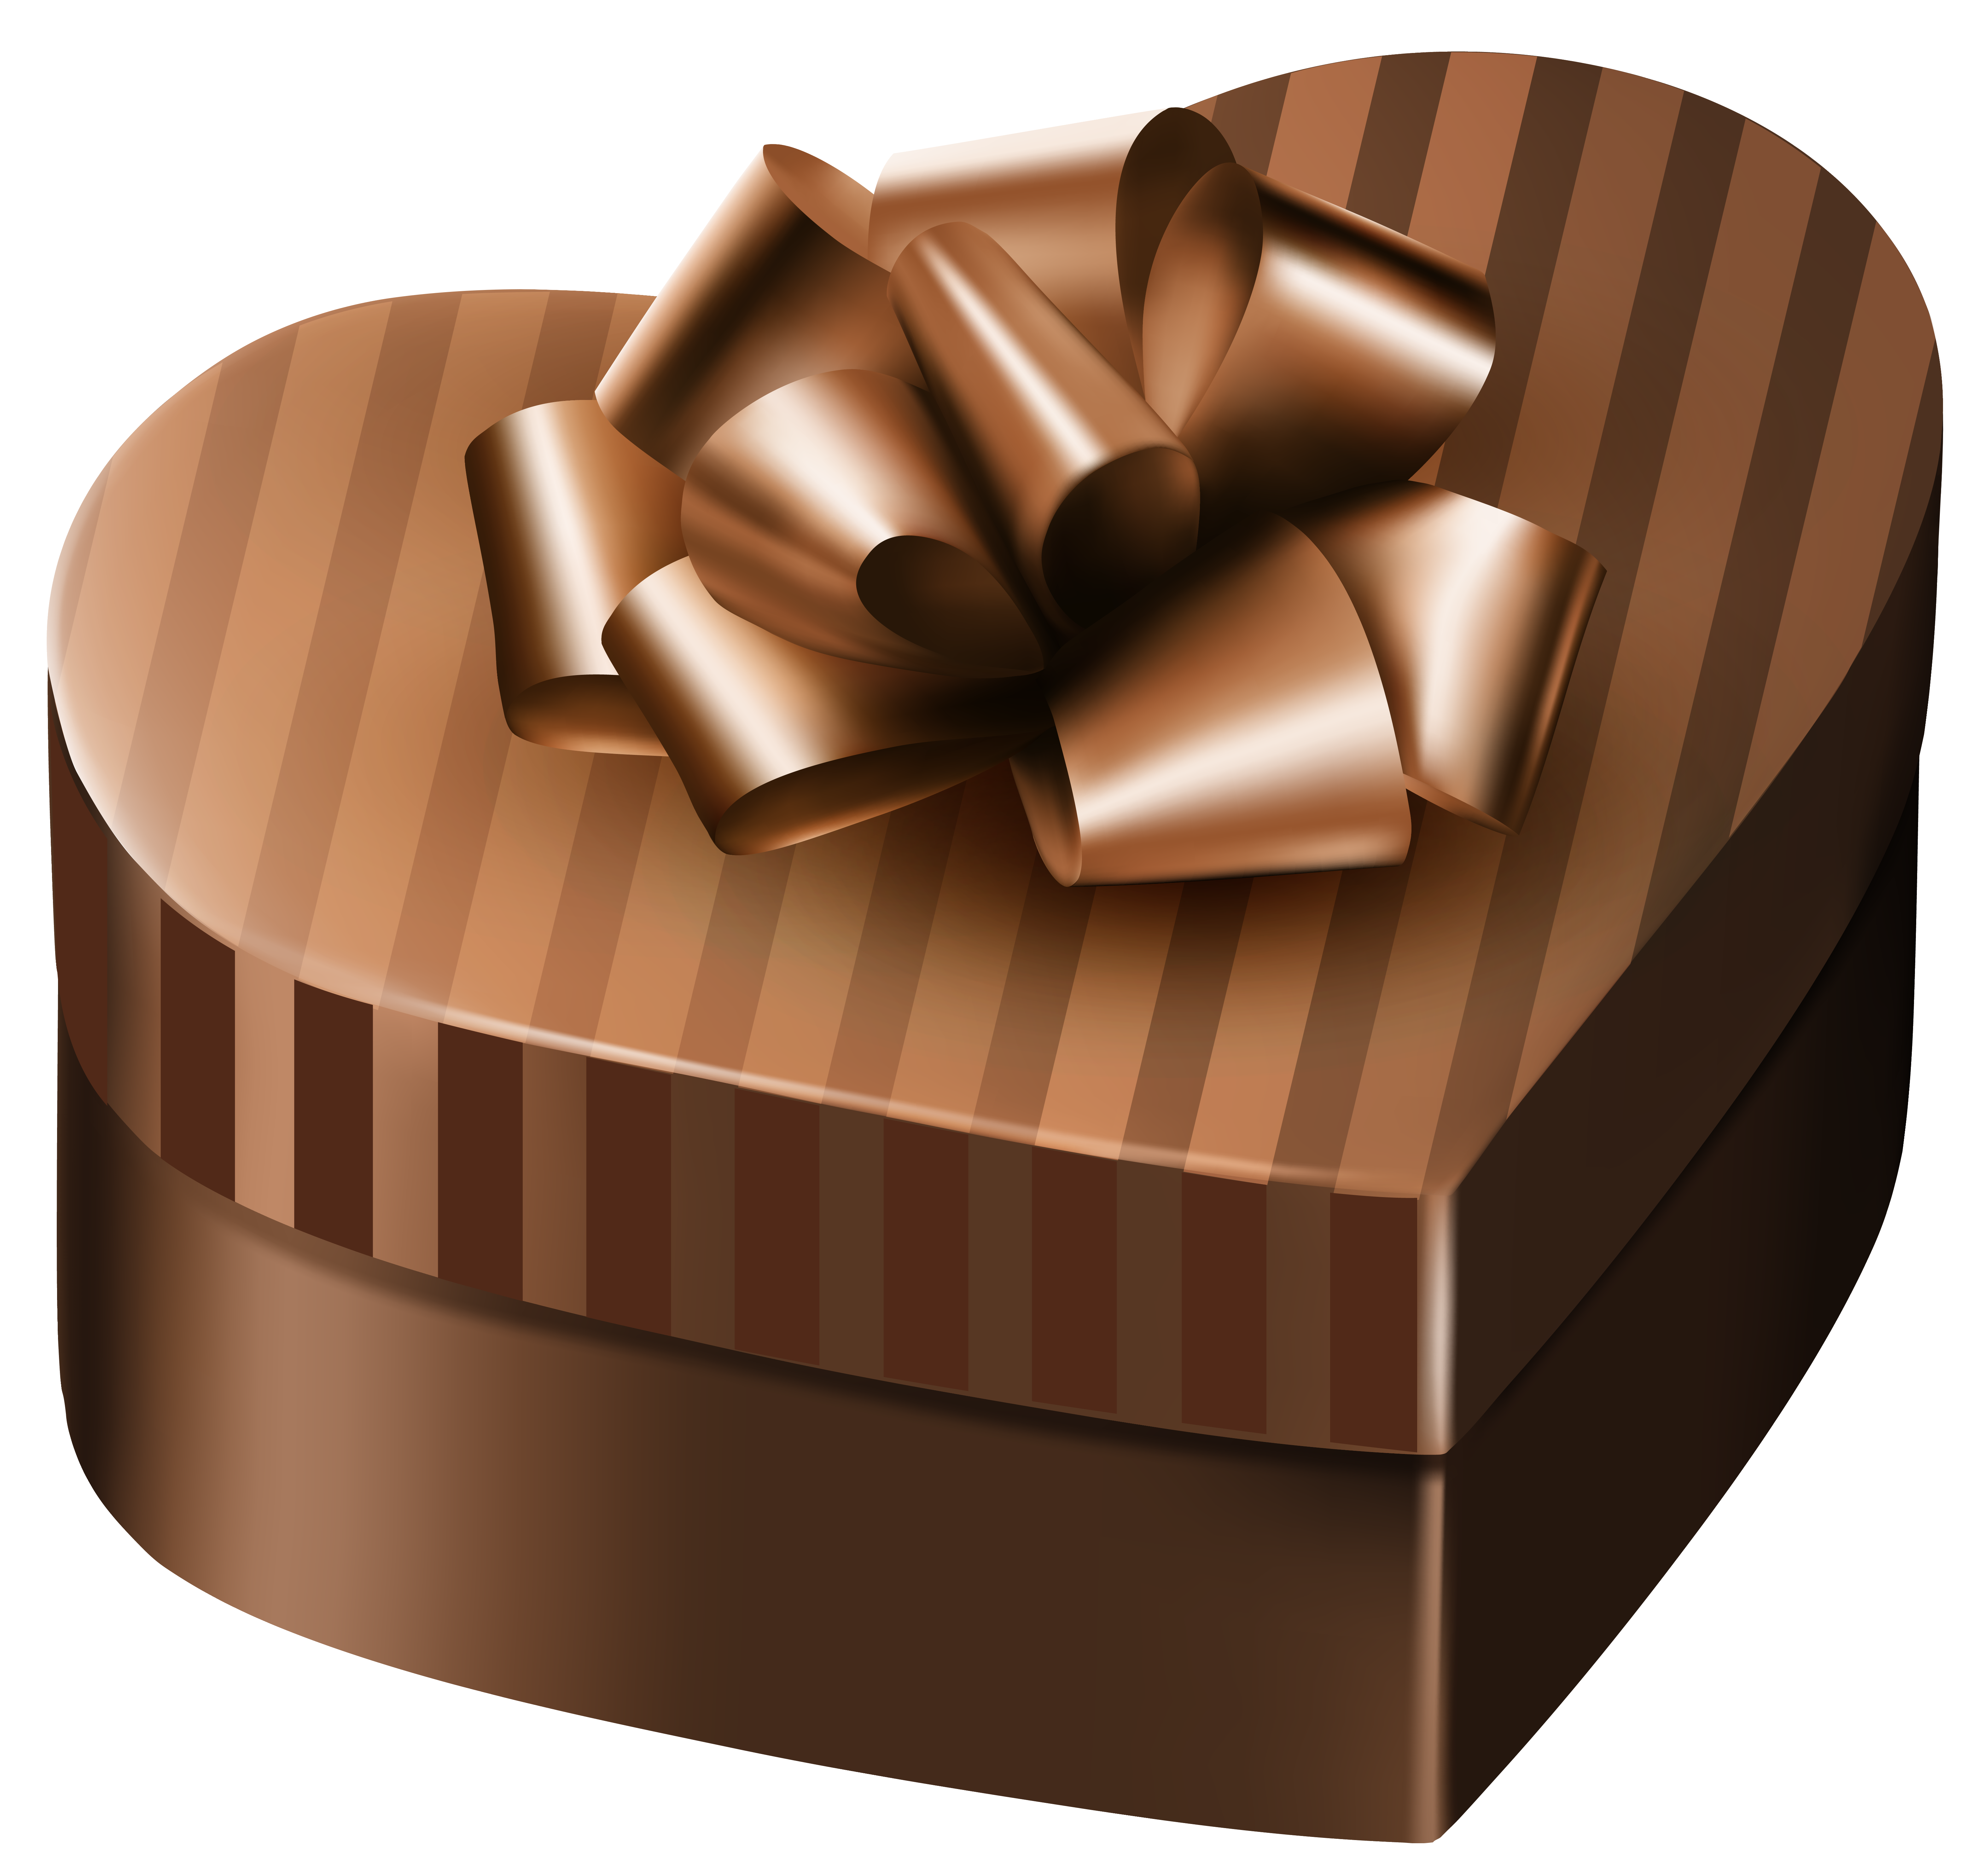 Brown heart clipart download Luxury Gift Box Brown Heart PNG Clipart Image | Gallery ... download